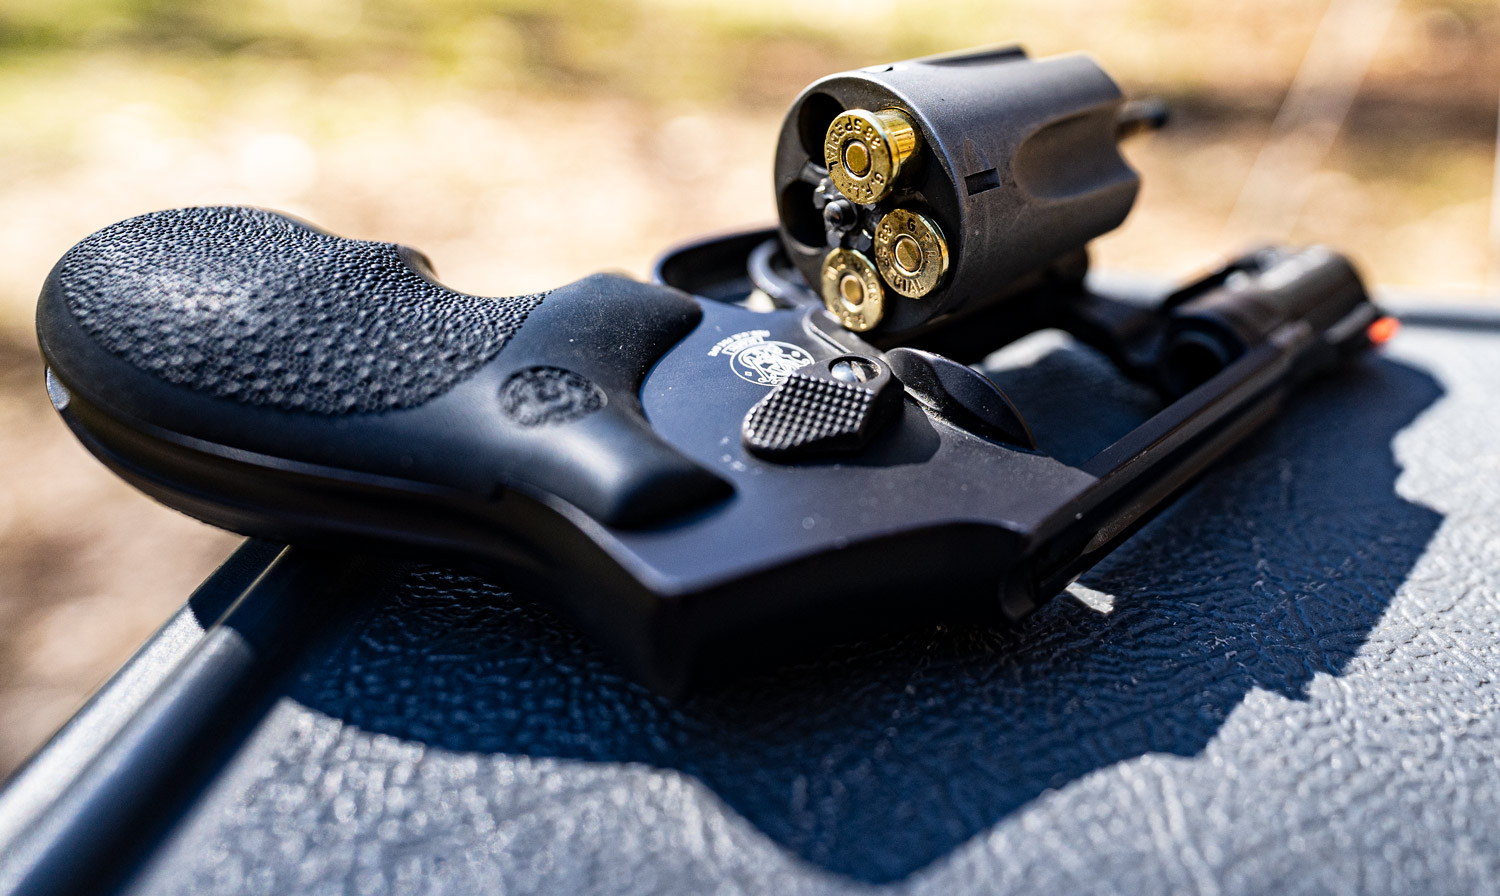 38 special ammo loaded in a revolver to test ballistic capabilities at a shooting range